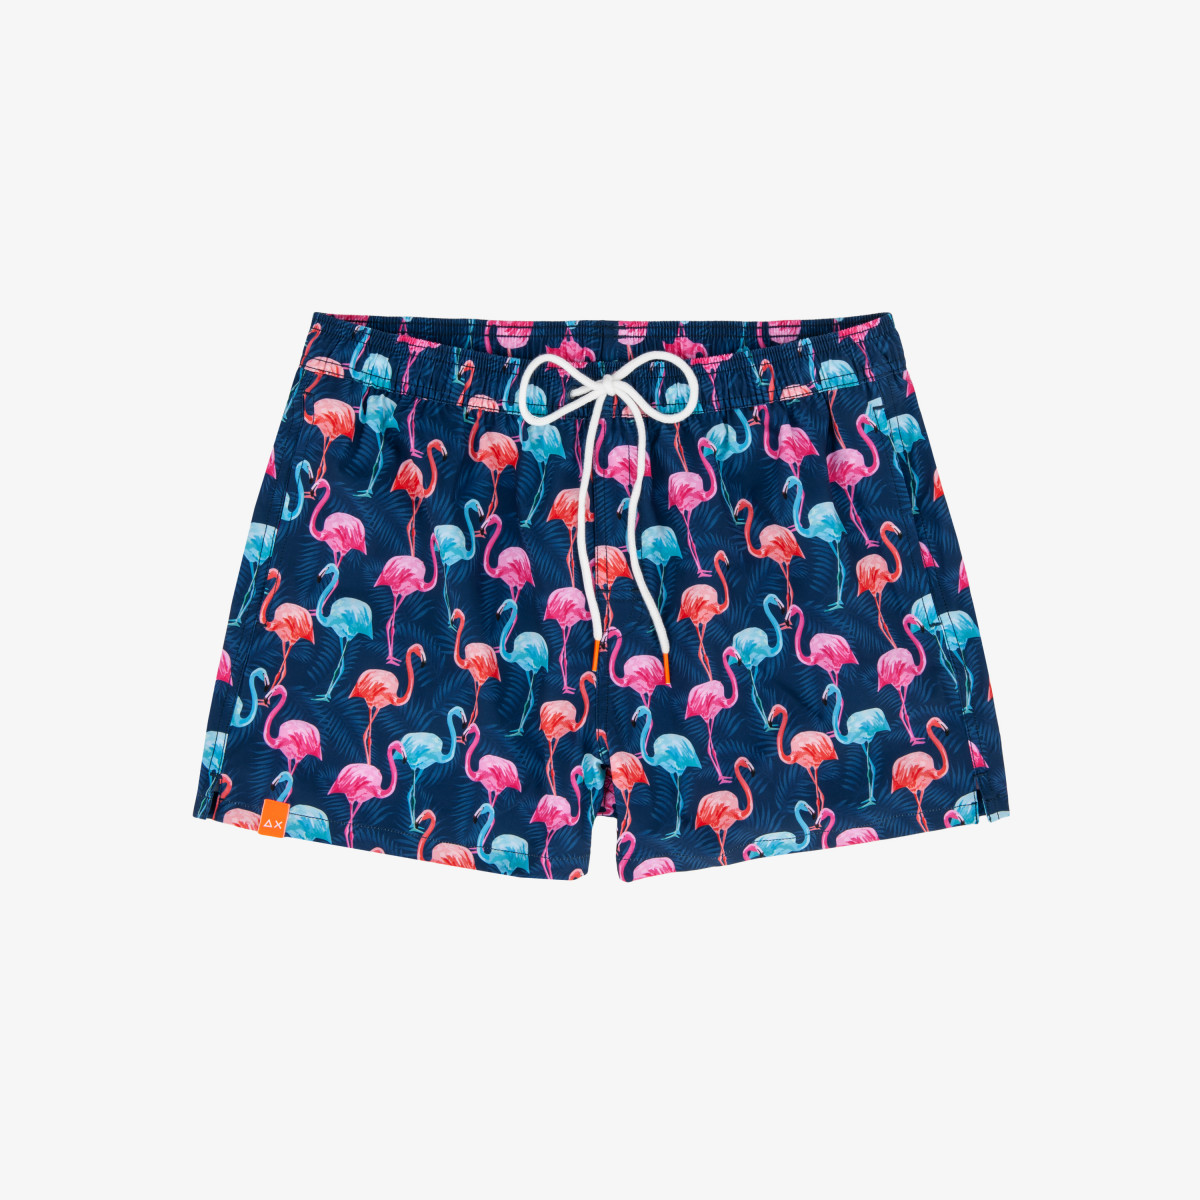 SWIM PANT BIG PRINT NAVY BLUE/AZZURRO